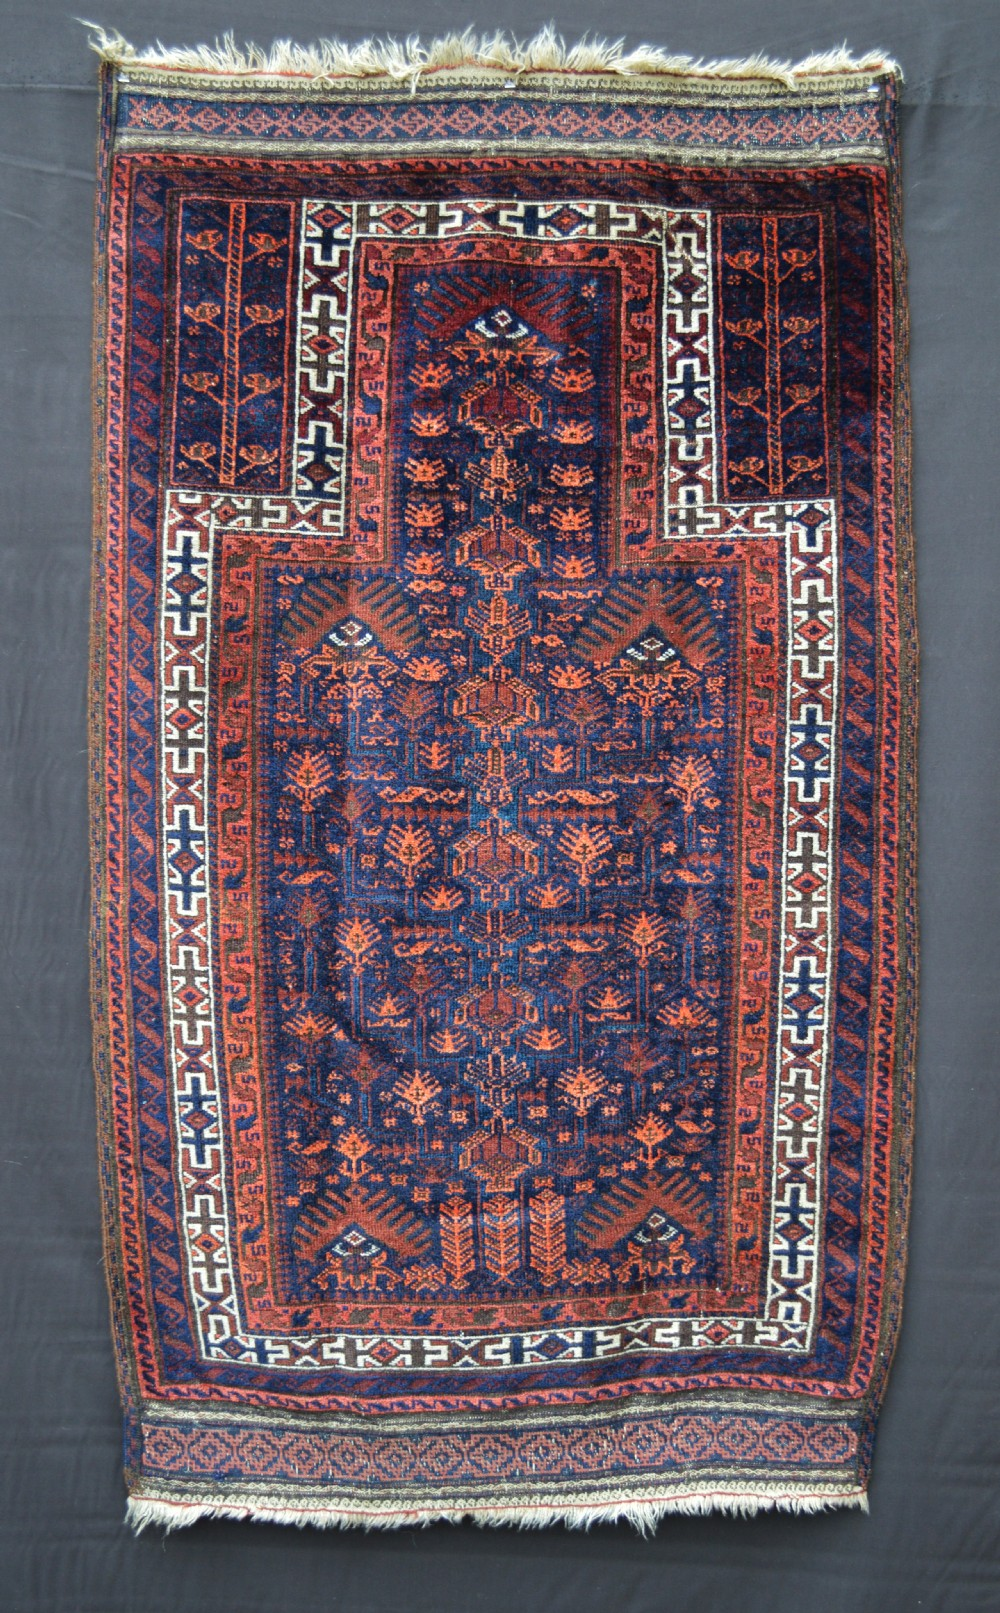 antique prayerrug timuri tribes borderlands of eastern persia and western afghanistan